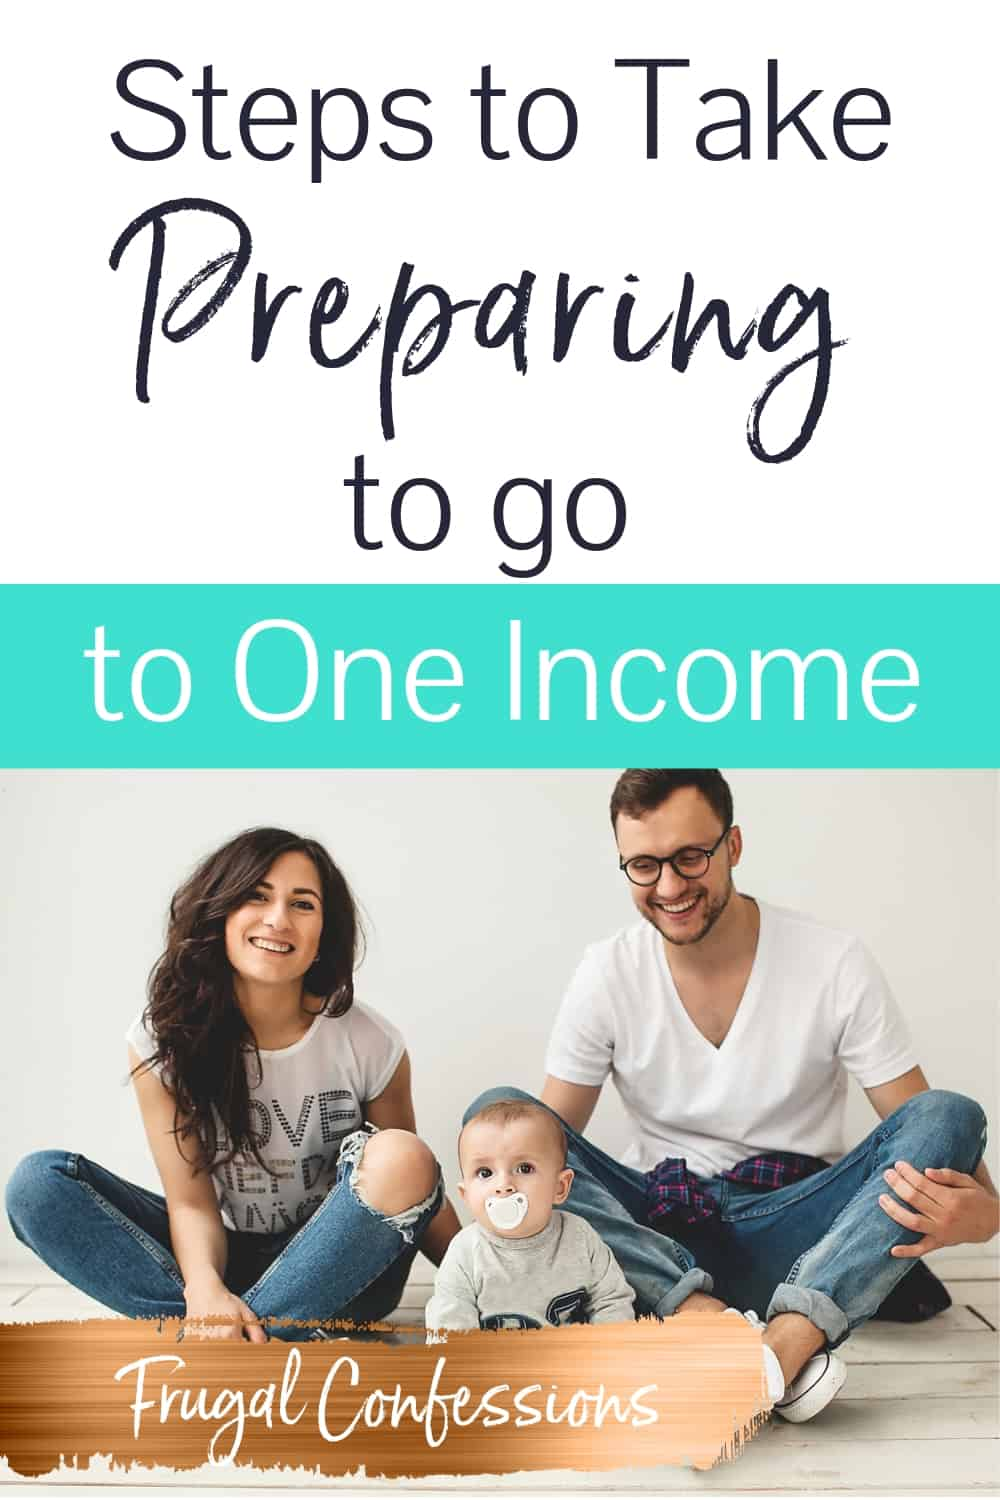 """family with two parents and one baby, sitting on floor with jeans, with text overlay """"steps to take preparing to go to one income"""""""